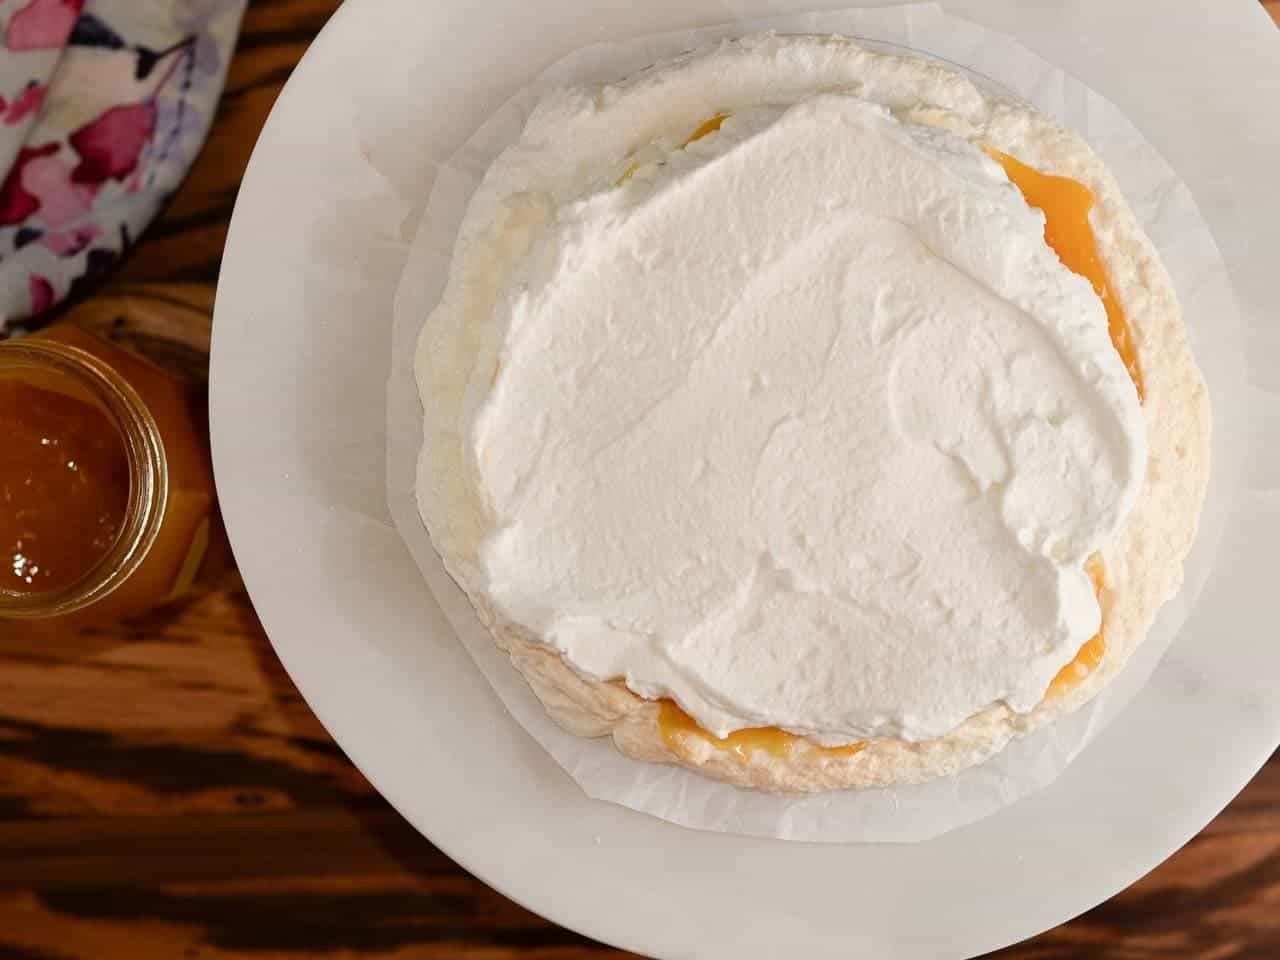 add a layer of whipped cream